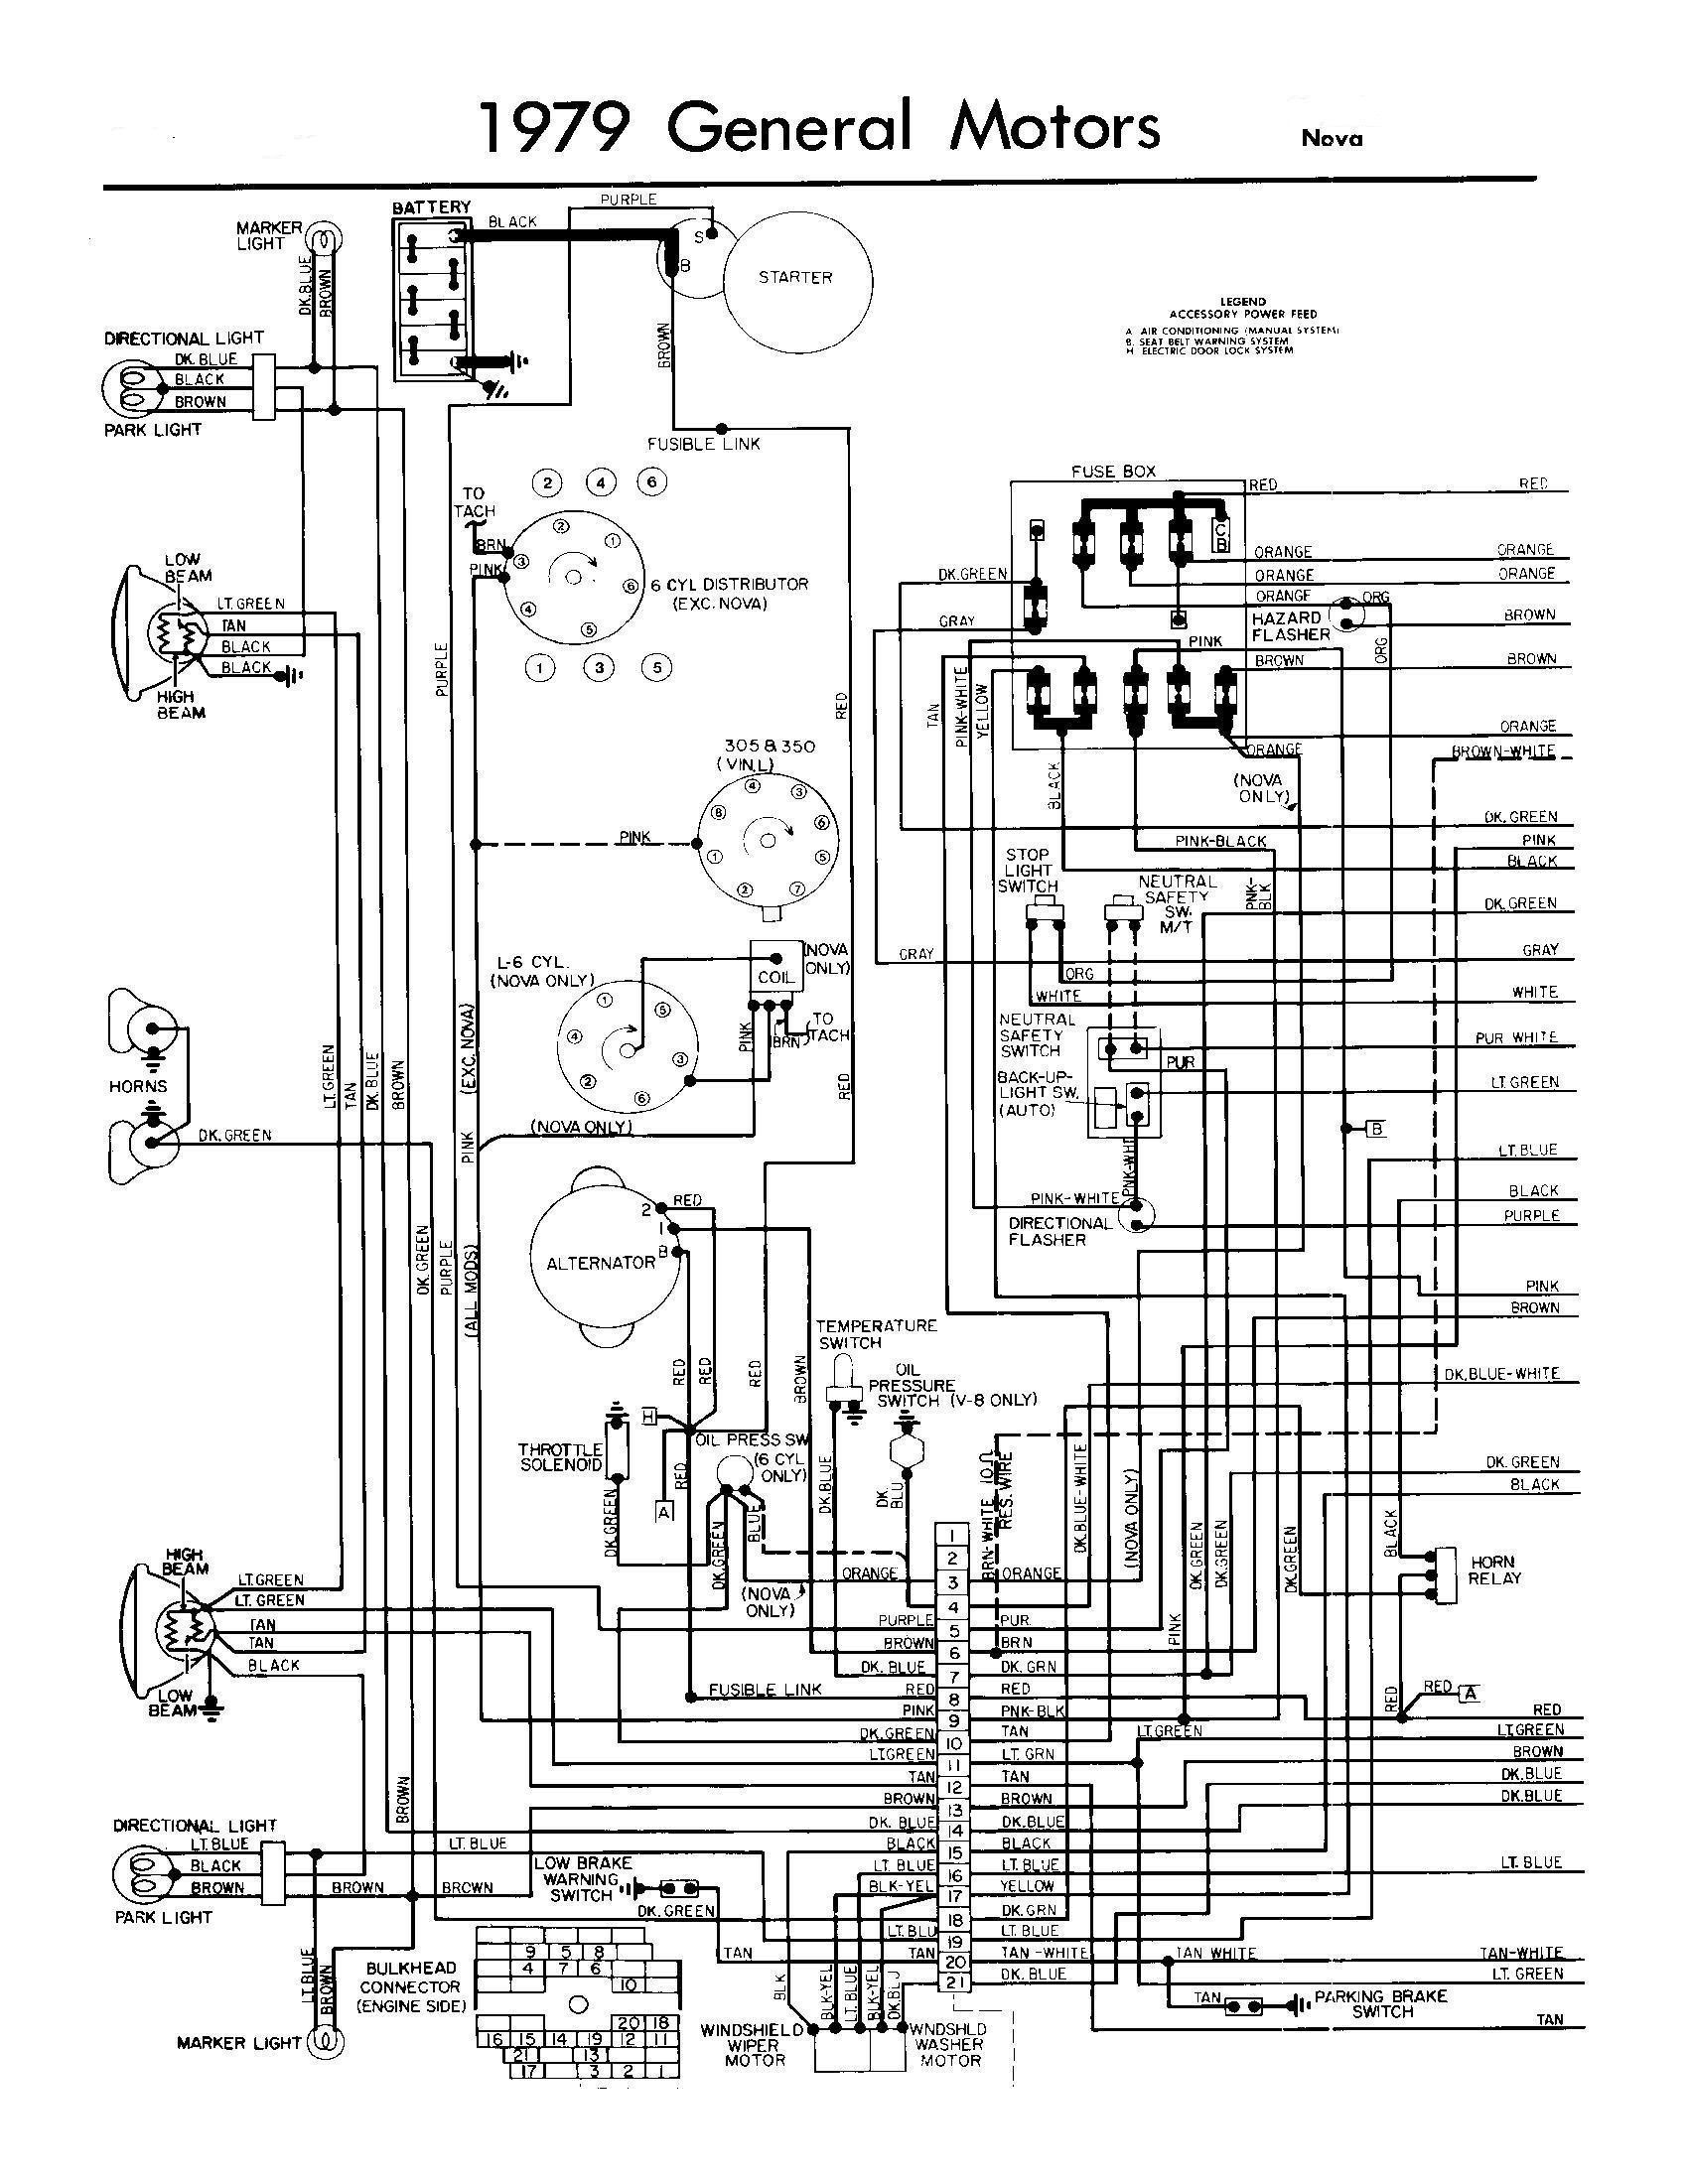 91 Chevy S10 Fuse Box | Wiring Diagram on